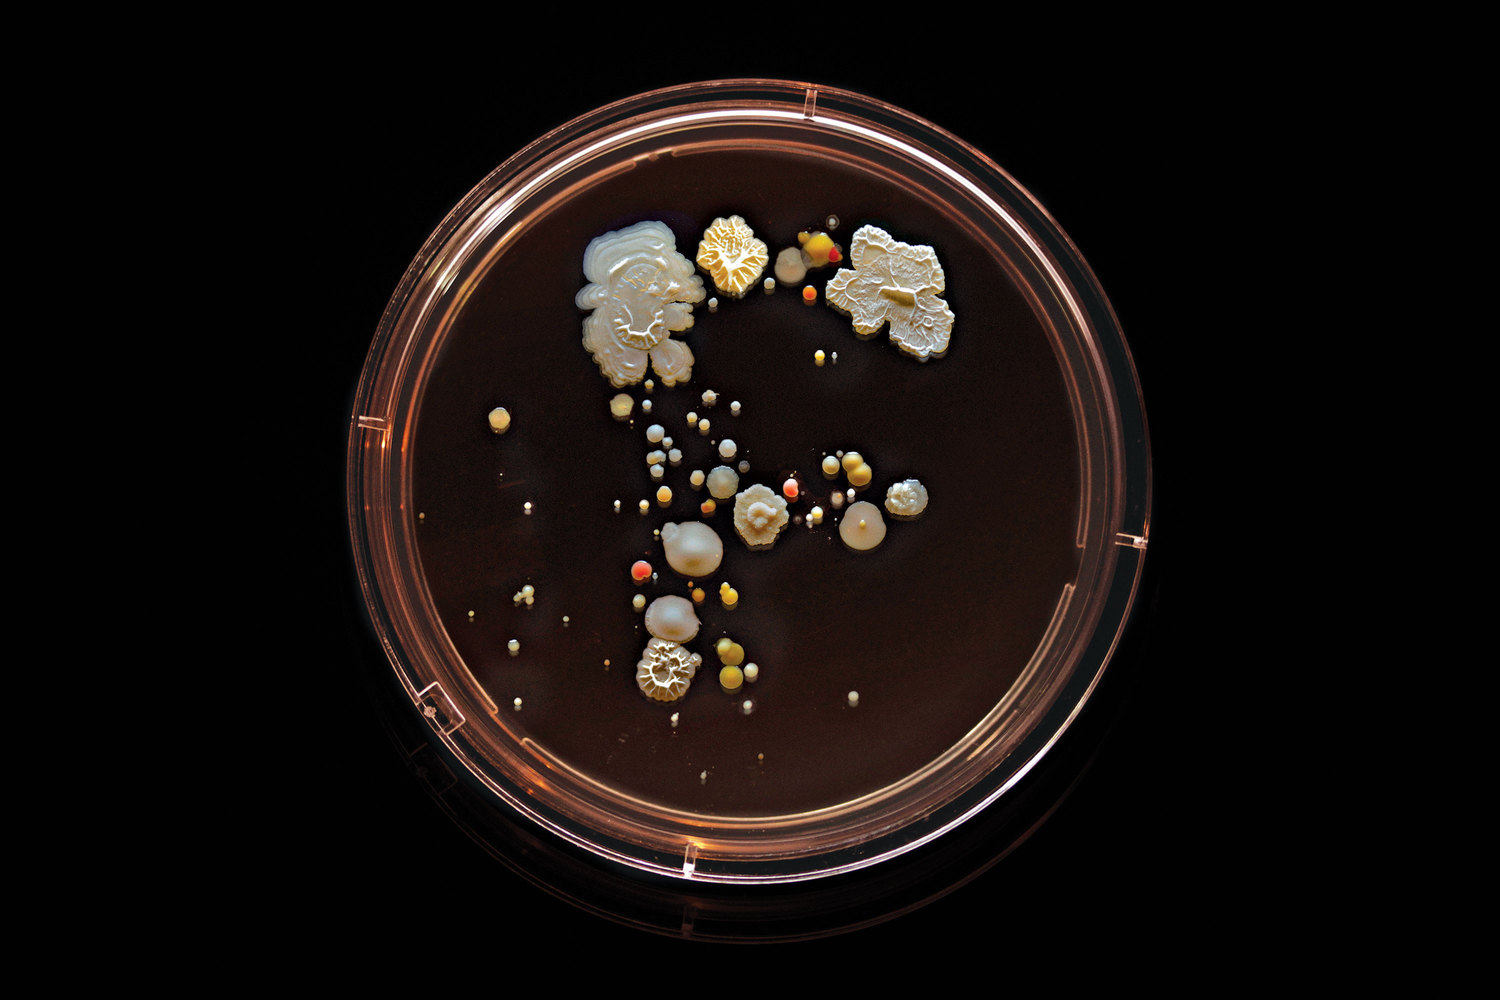 F Train: Contains E. coli, Micrococcus luteus, Bacillus subtilis